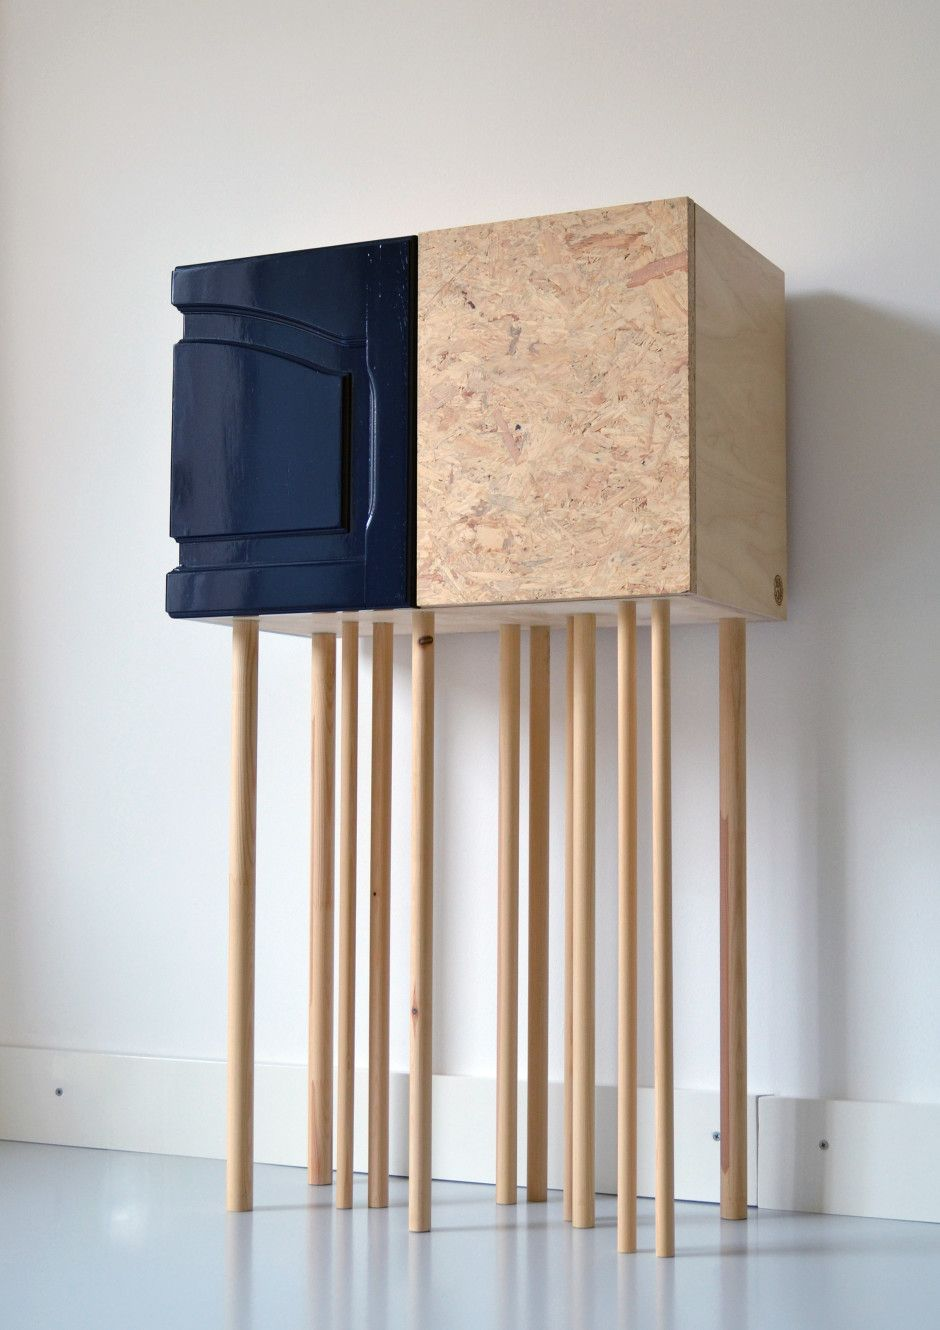 Holyscrap 44 High Legged Cabinet by Holyscrap handmade furniture made in The Netherlands on CROWDYHOUSE